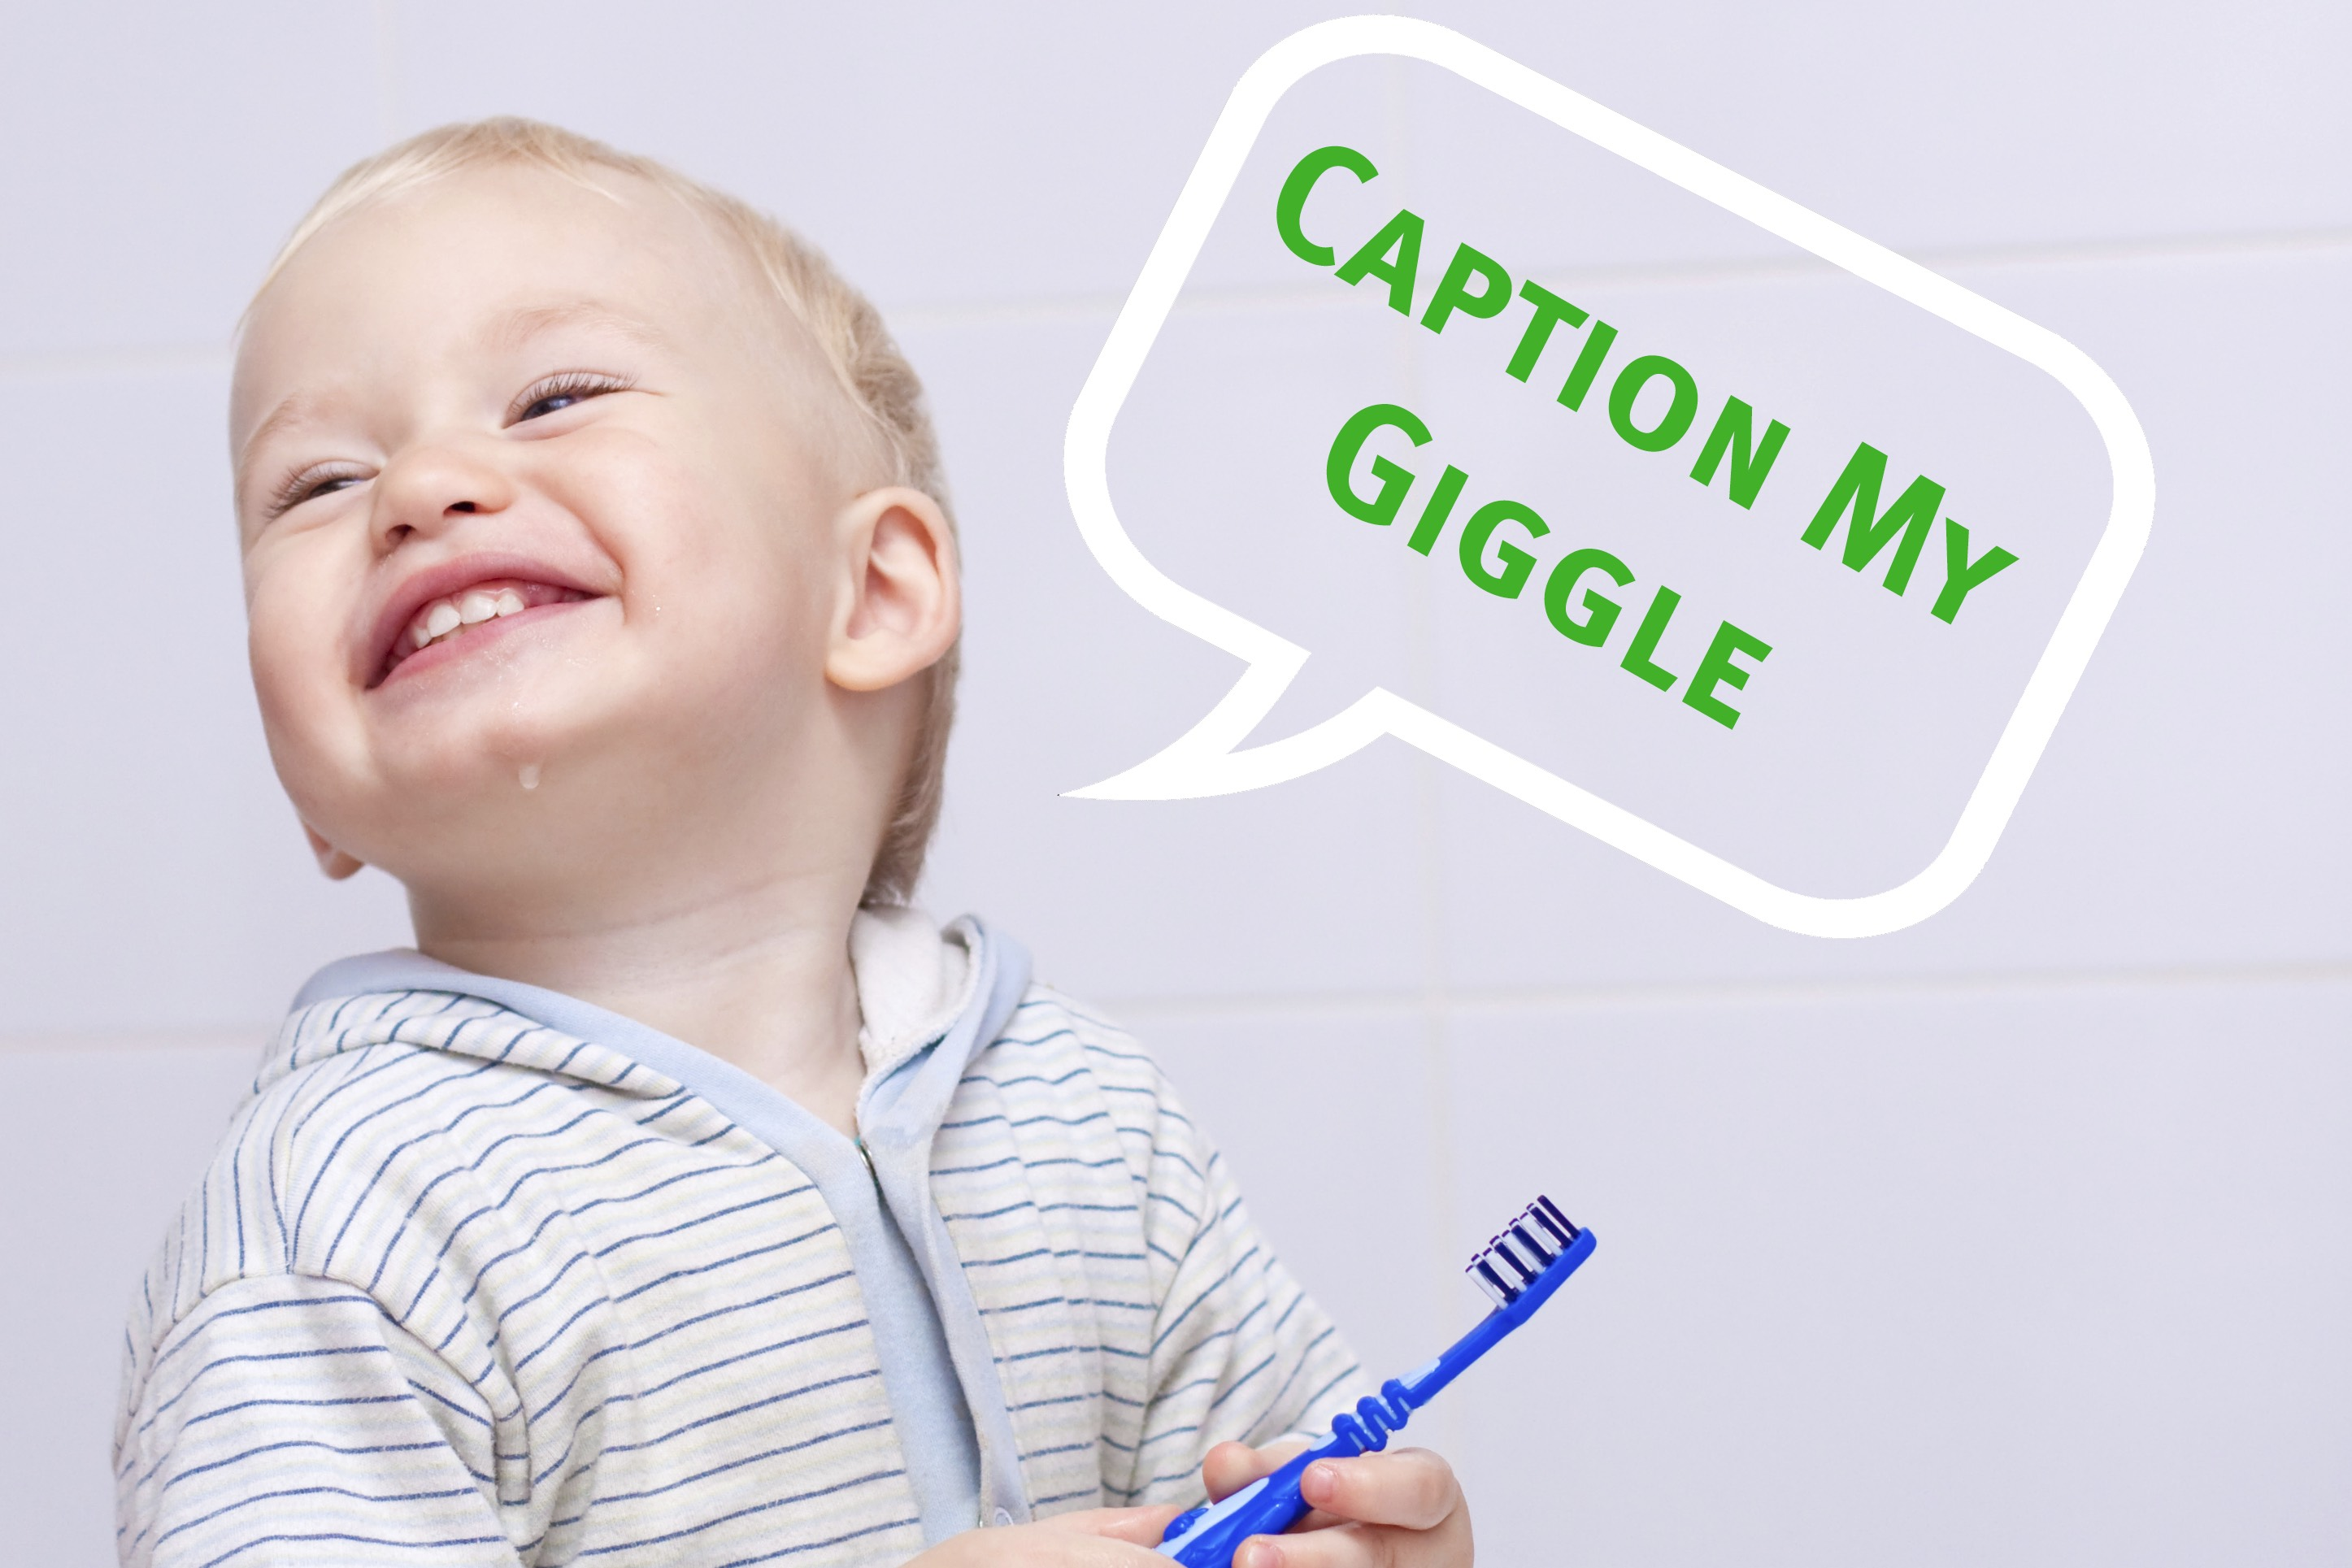 Giggle Giveaway: Show your Funny Side for Chance to Win a $100 Visa Gift Card